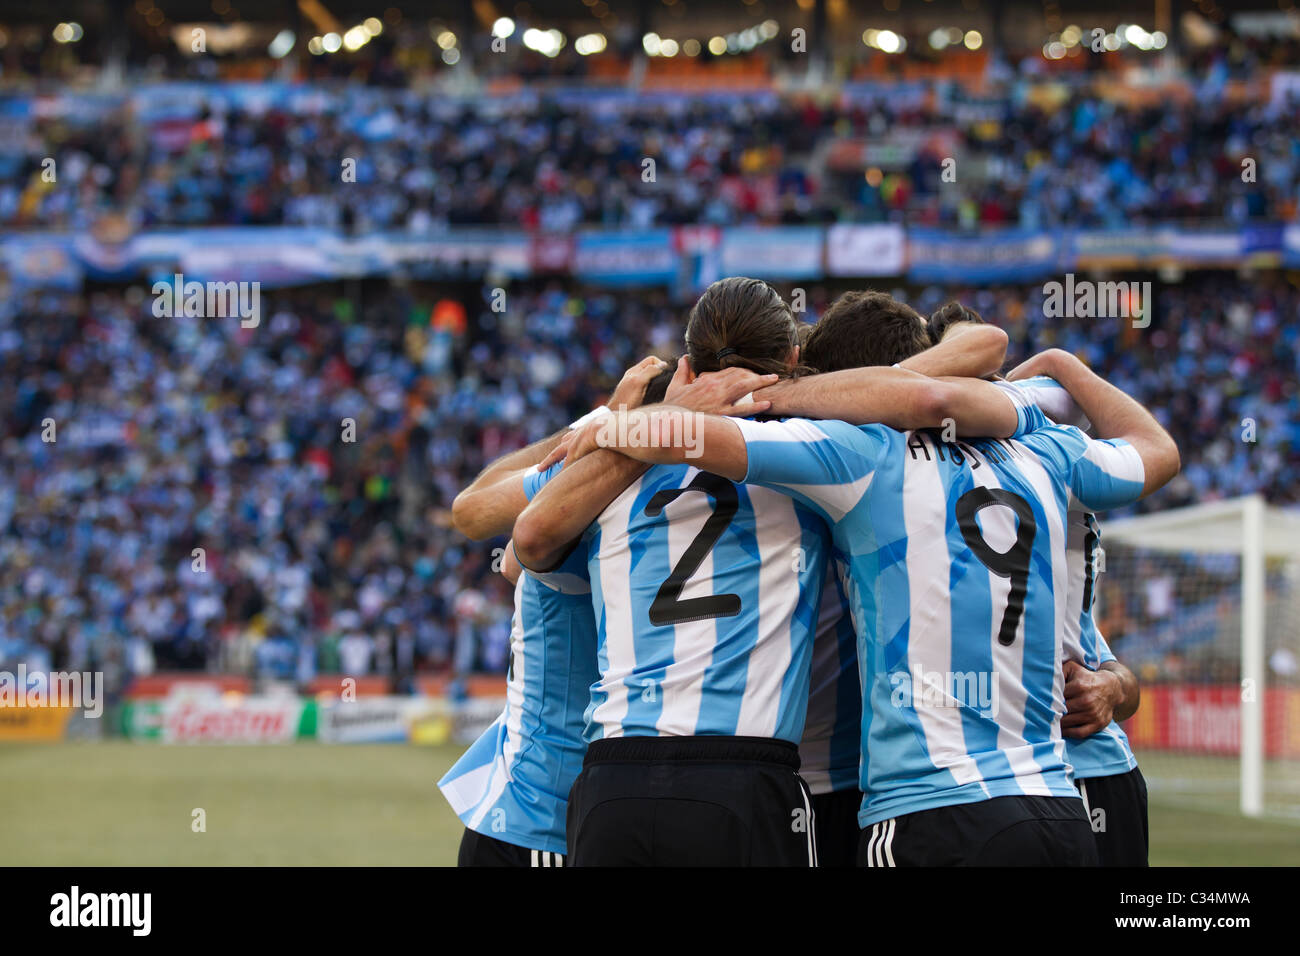 Argentina players celebrate after a goal against South Korea during a 2010 FIFA World Cup football match June 17, - Stock Image